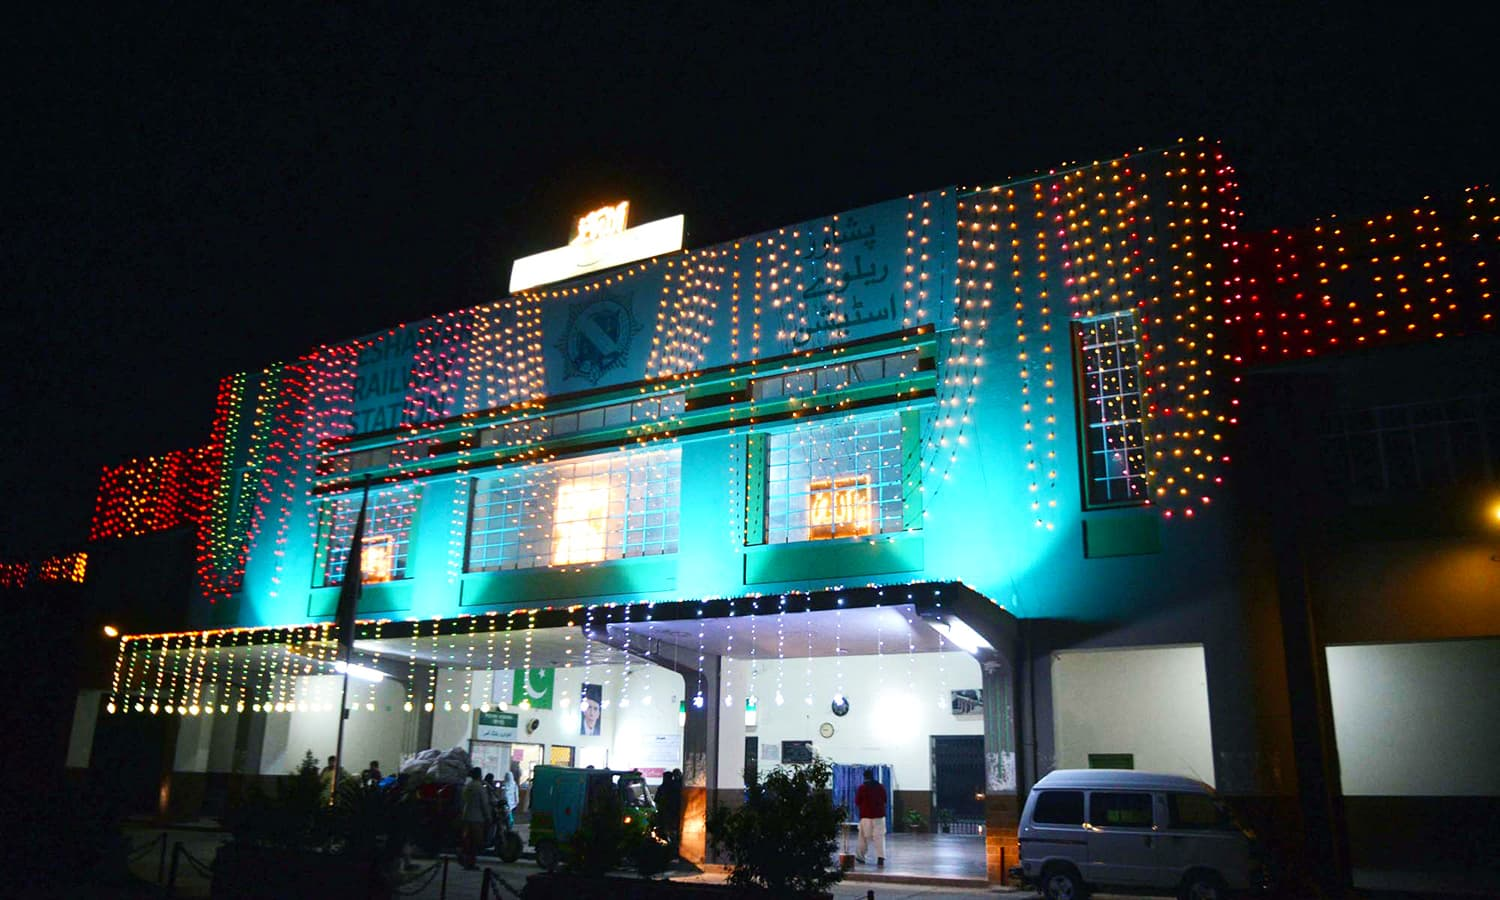 A view of Peshawar's Cantt Railway Station, that has been illuminated ahead of Eid Miladun Nabi. — APP